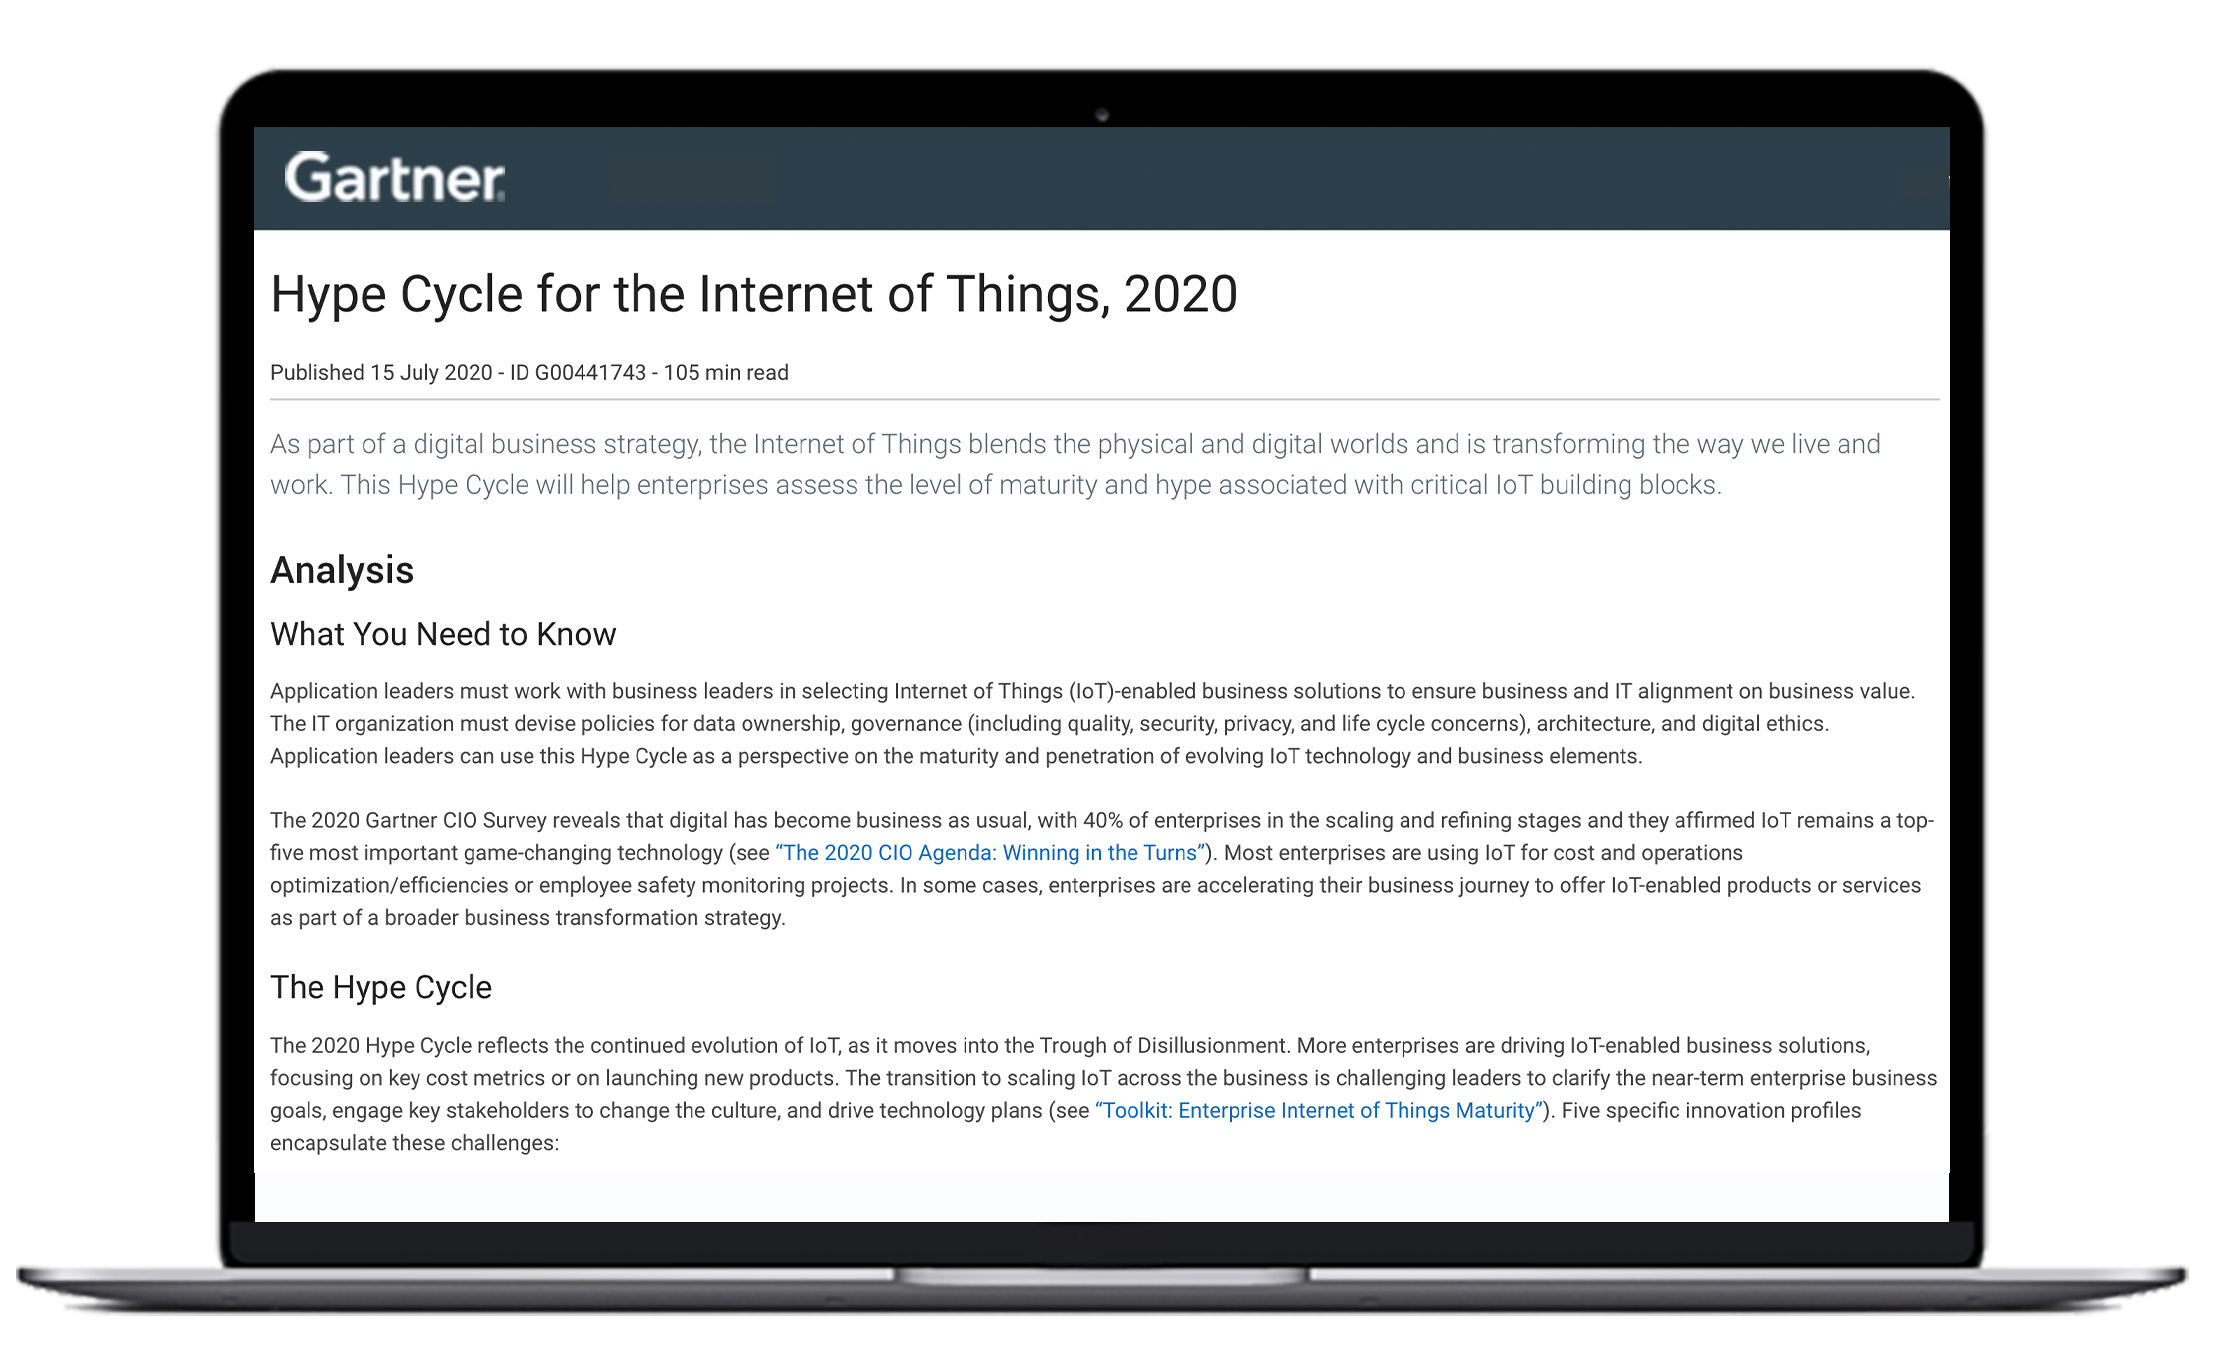 laptop showing preview of gartner iot hype cycle 2020 report